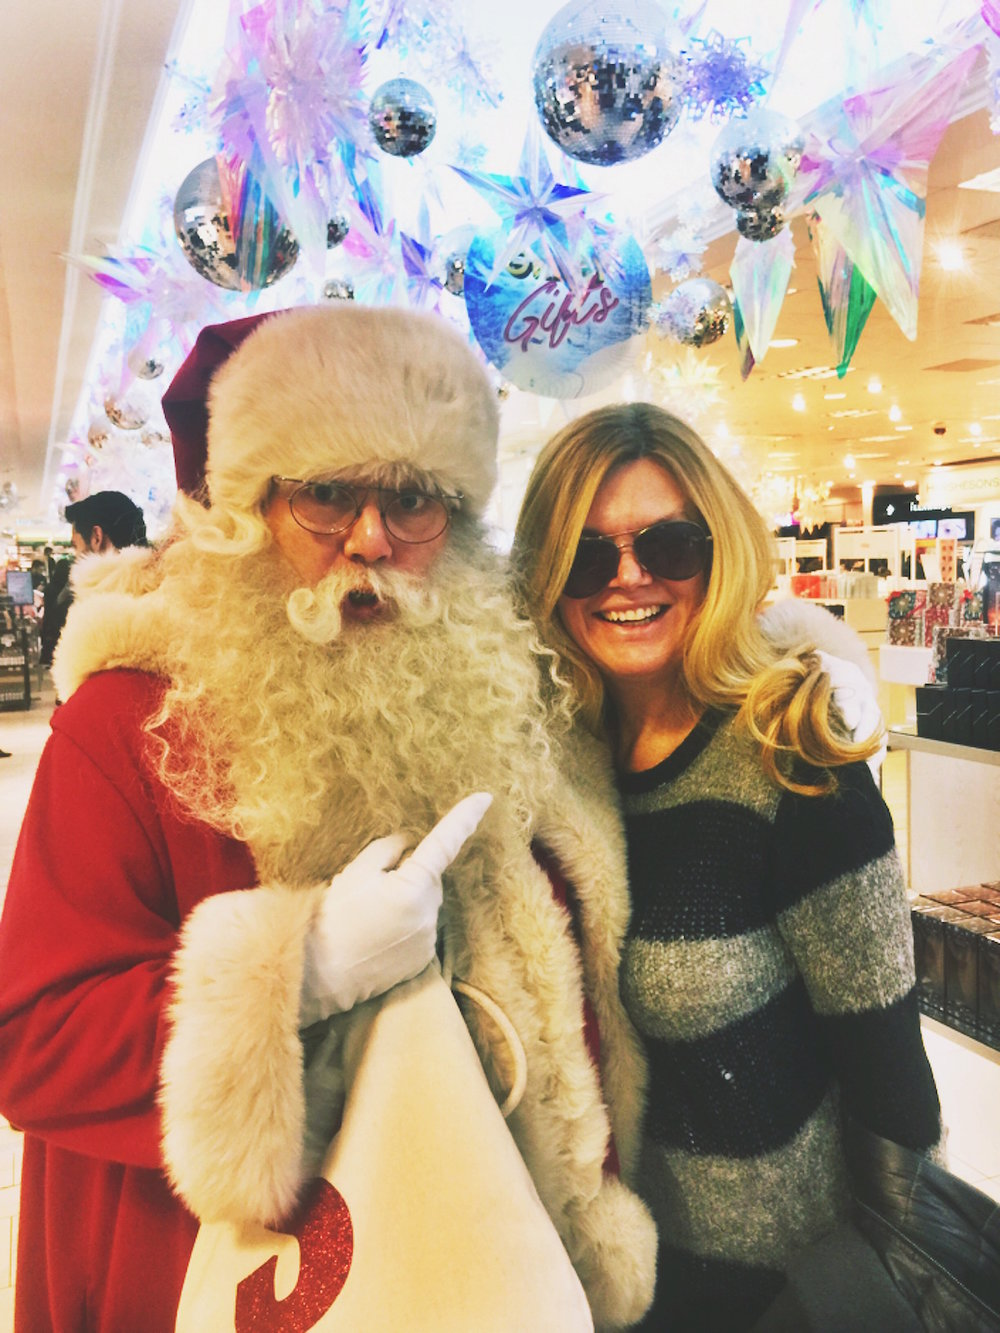 Abroad in London with Santa at Selfridge's